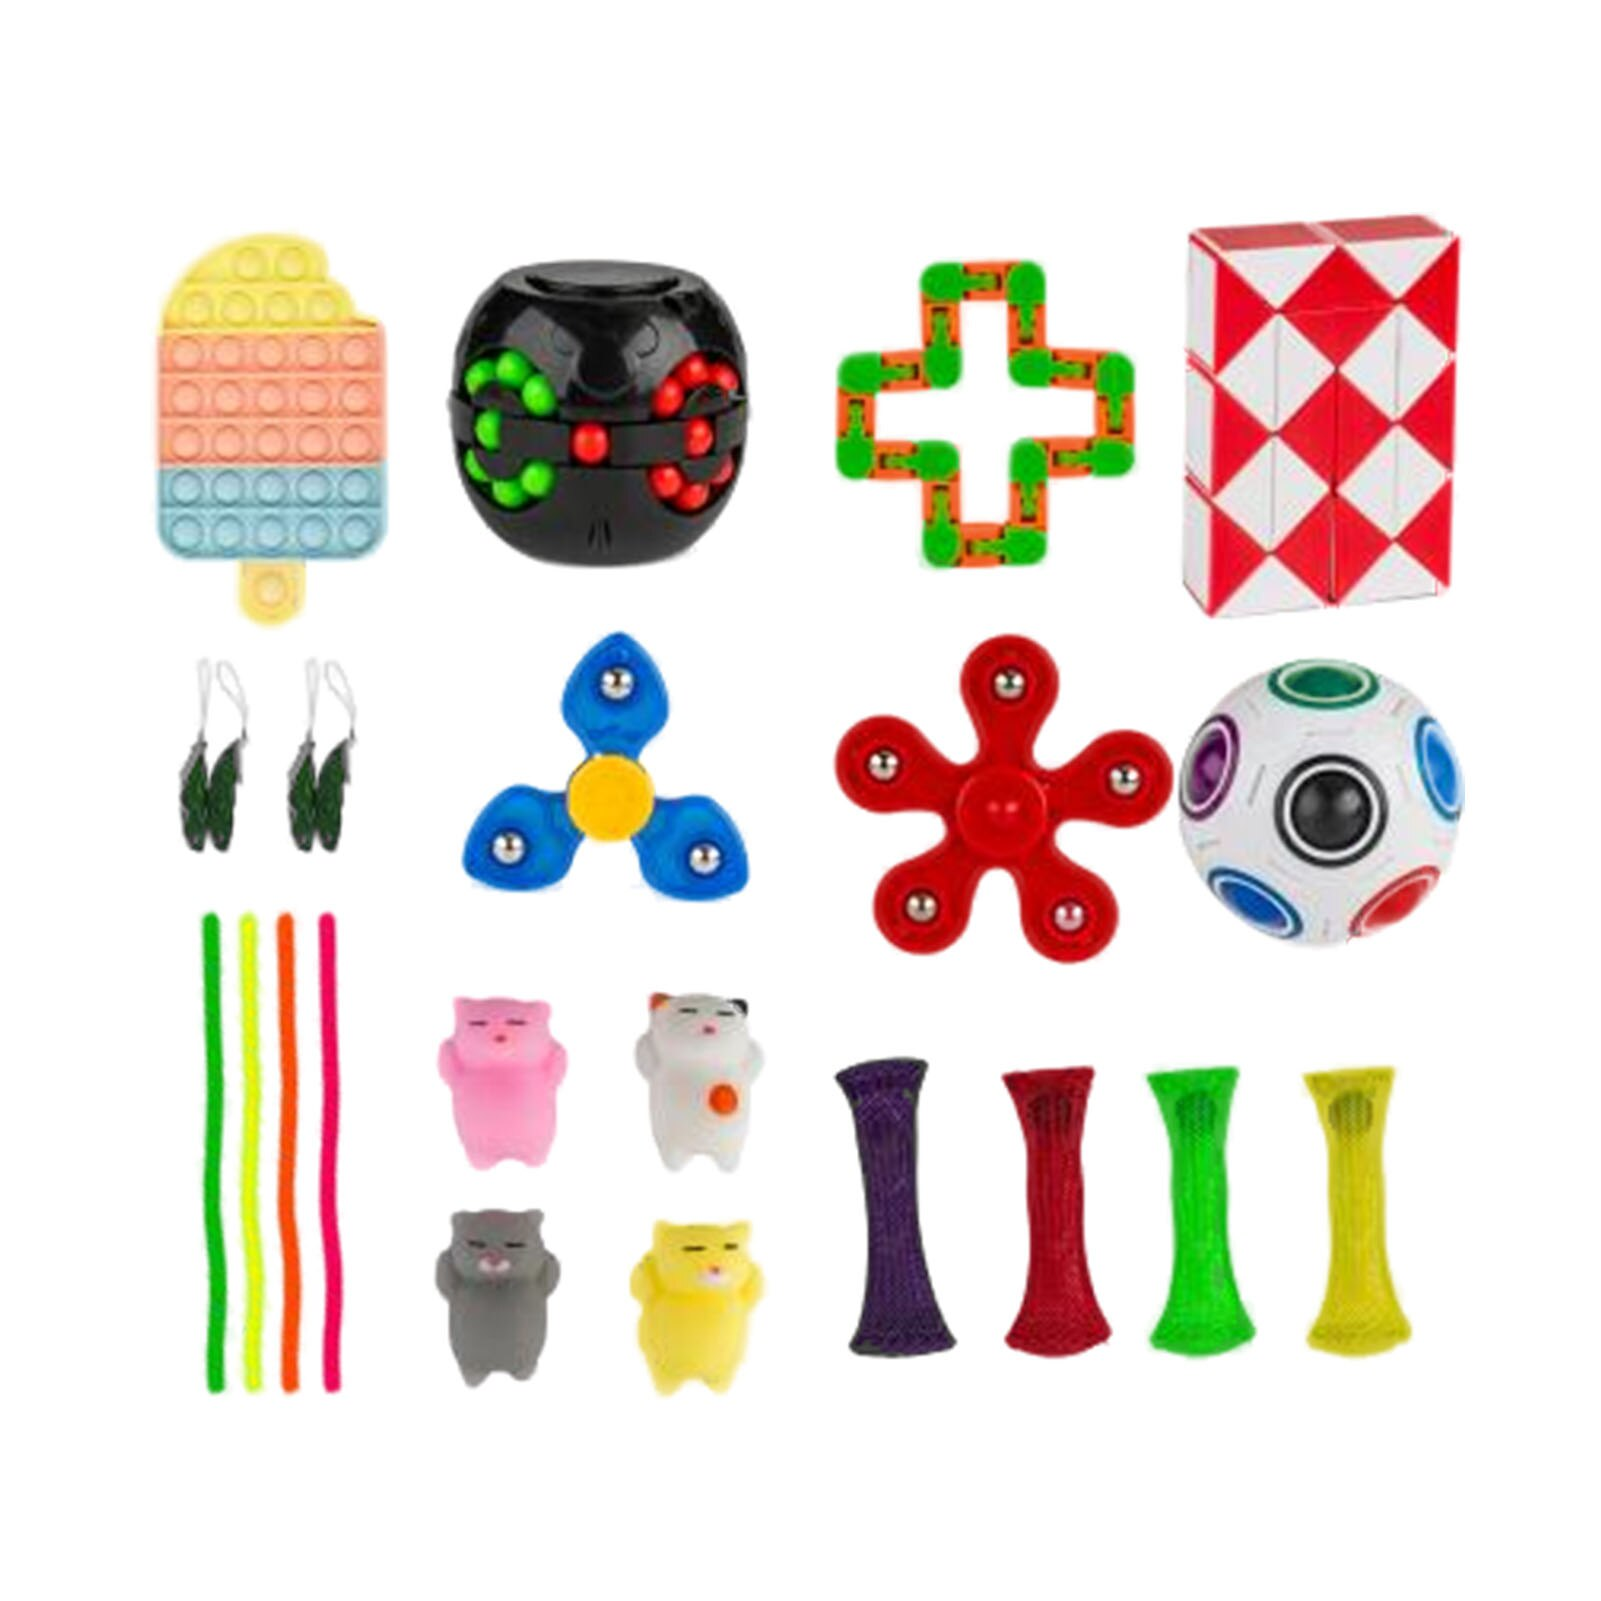 24/21 Pack Fidget Toys Set Funny Gift for Children Adult Antistress Figet Toys Autism Anxiety Relief Stress Sensory Toy Sets enlarge